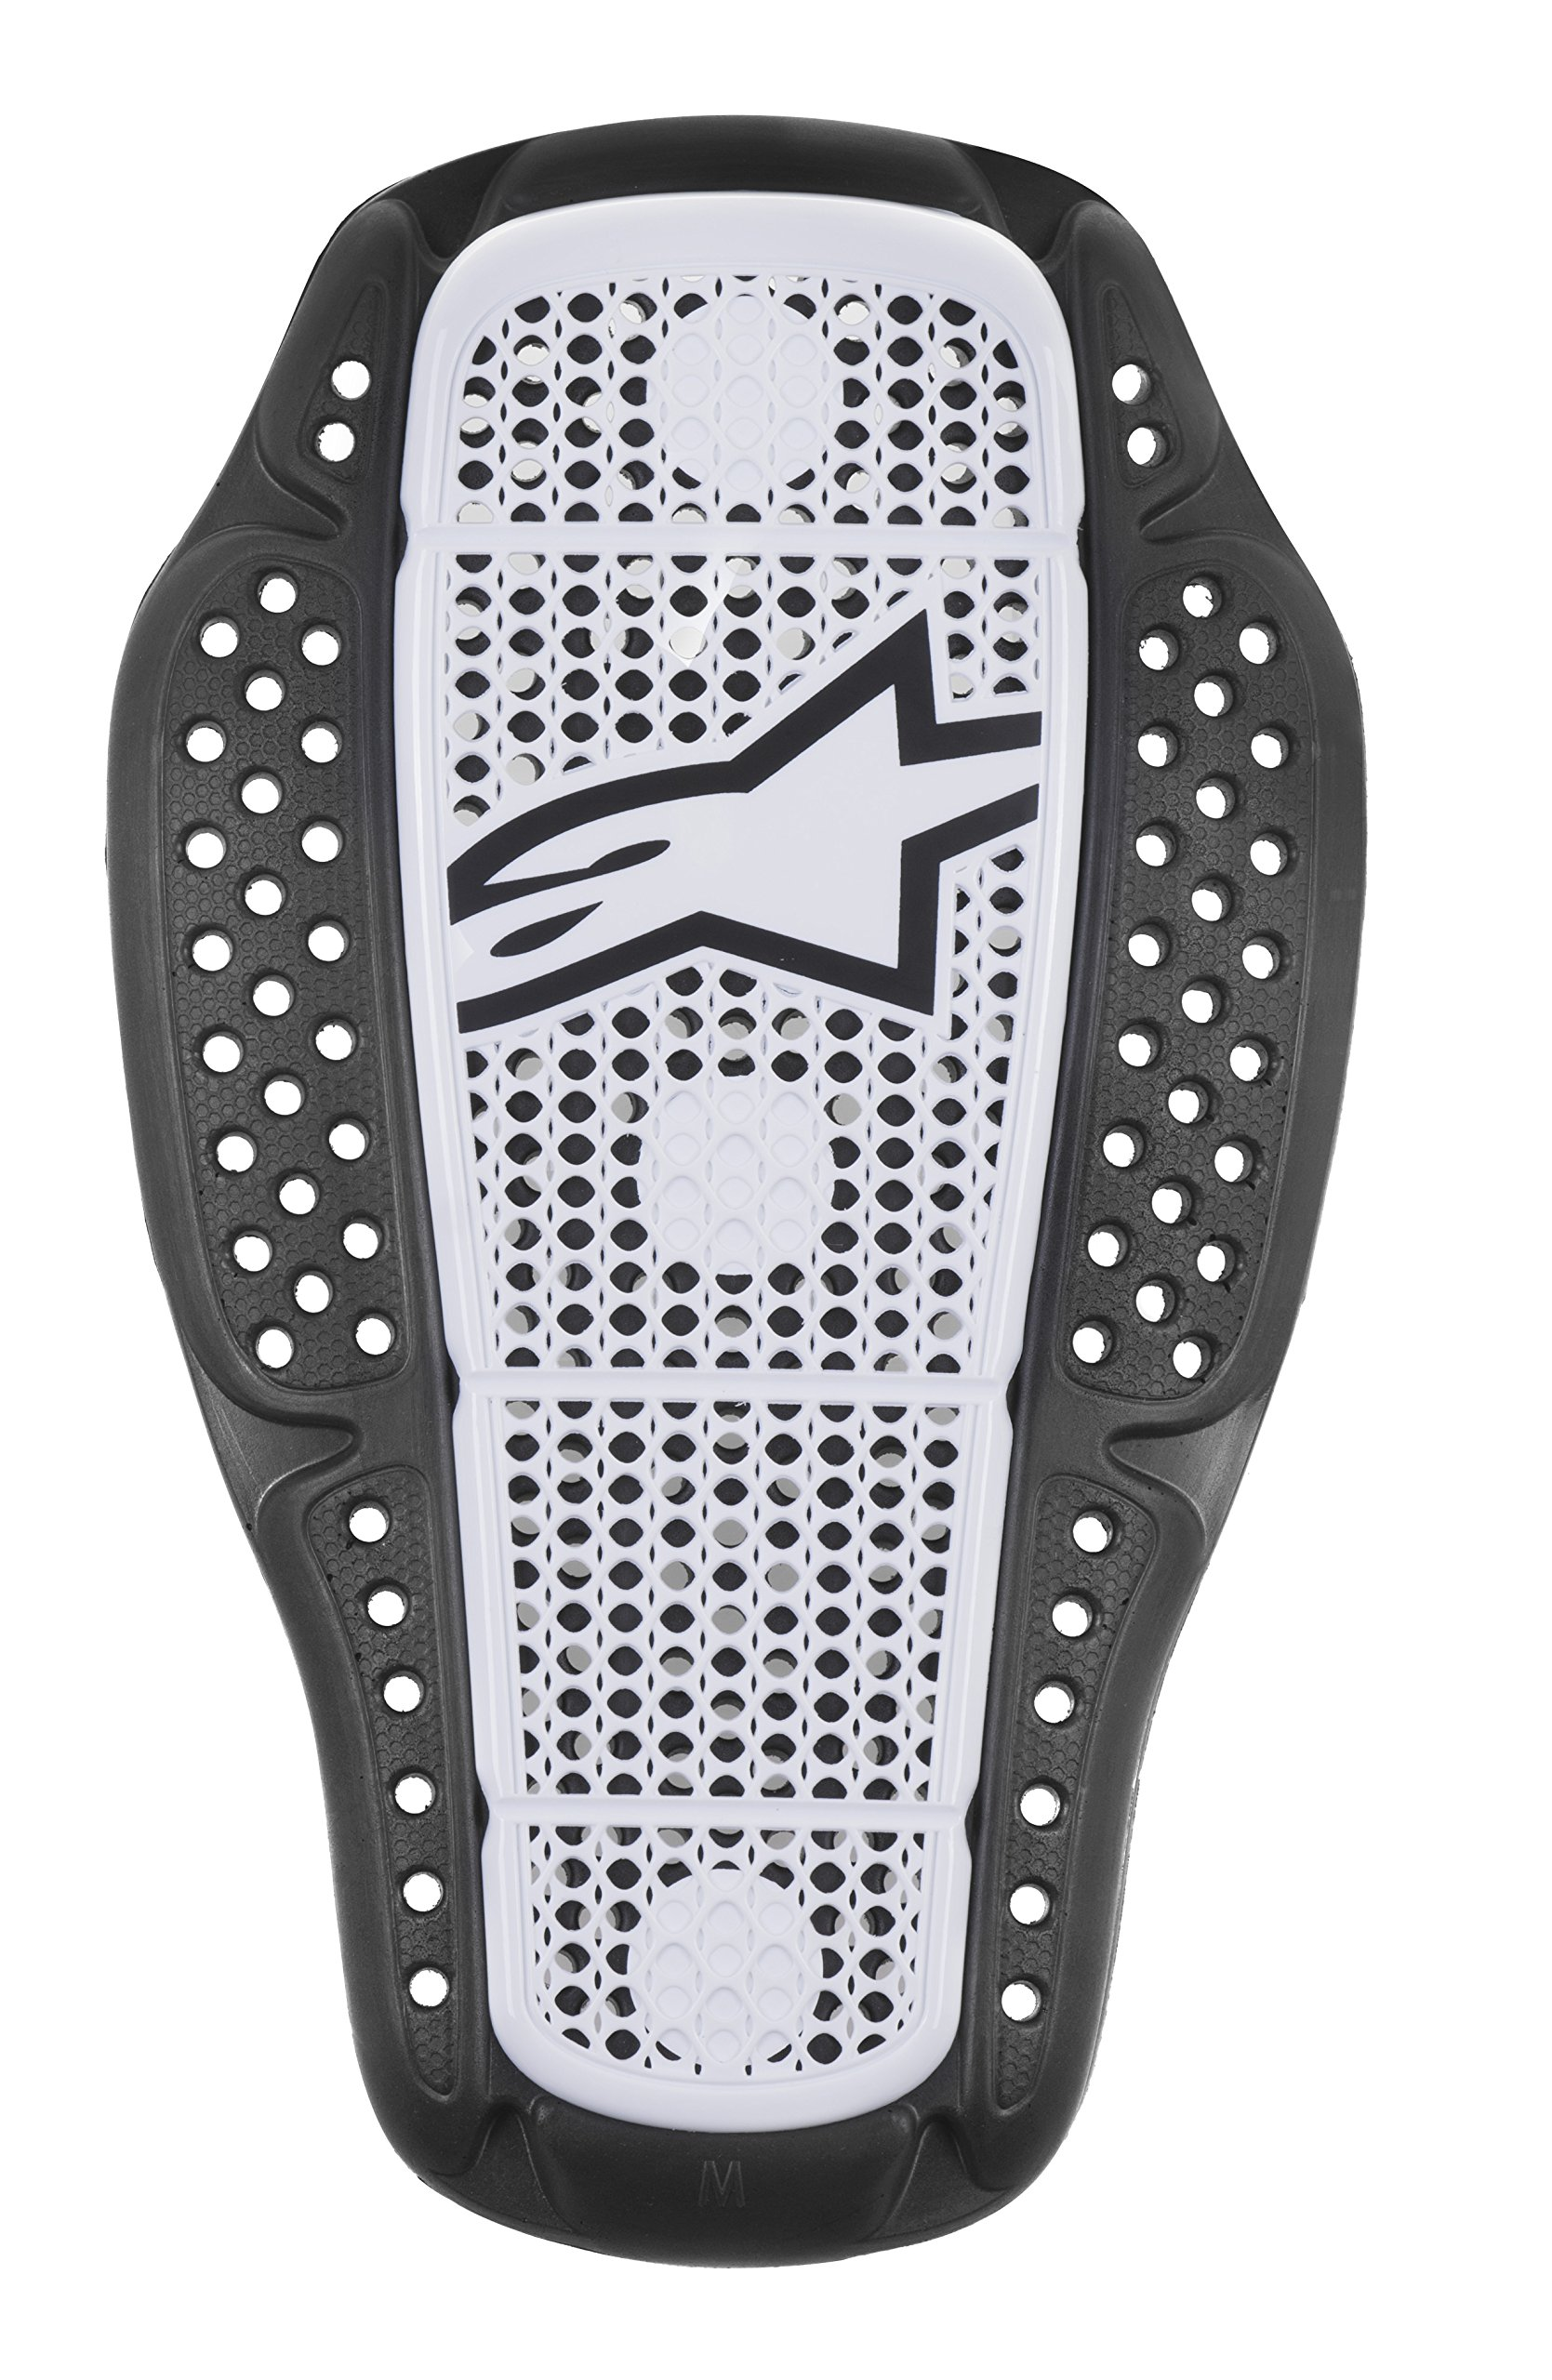 Alpinestars Nucleon KR-1i Men's Back Protector Street Motorcyle Body Armor, Black, Small